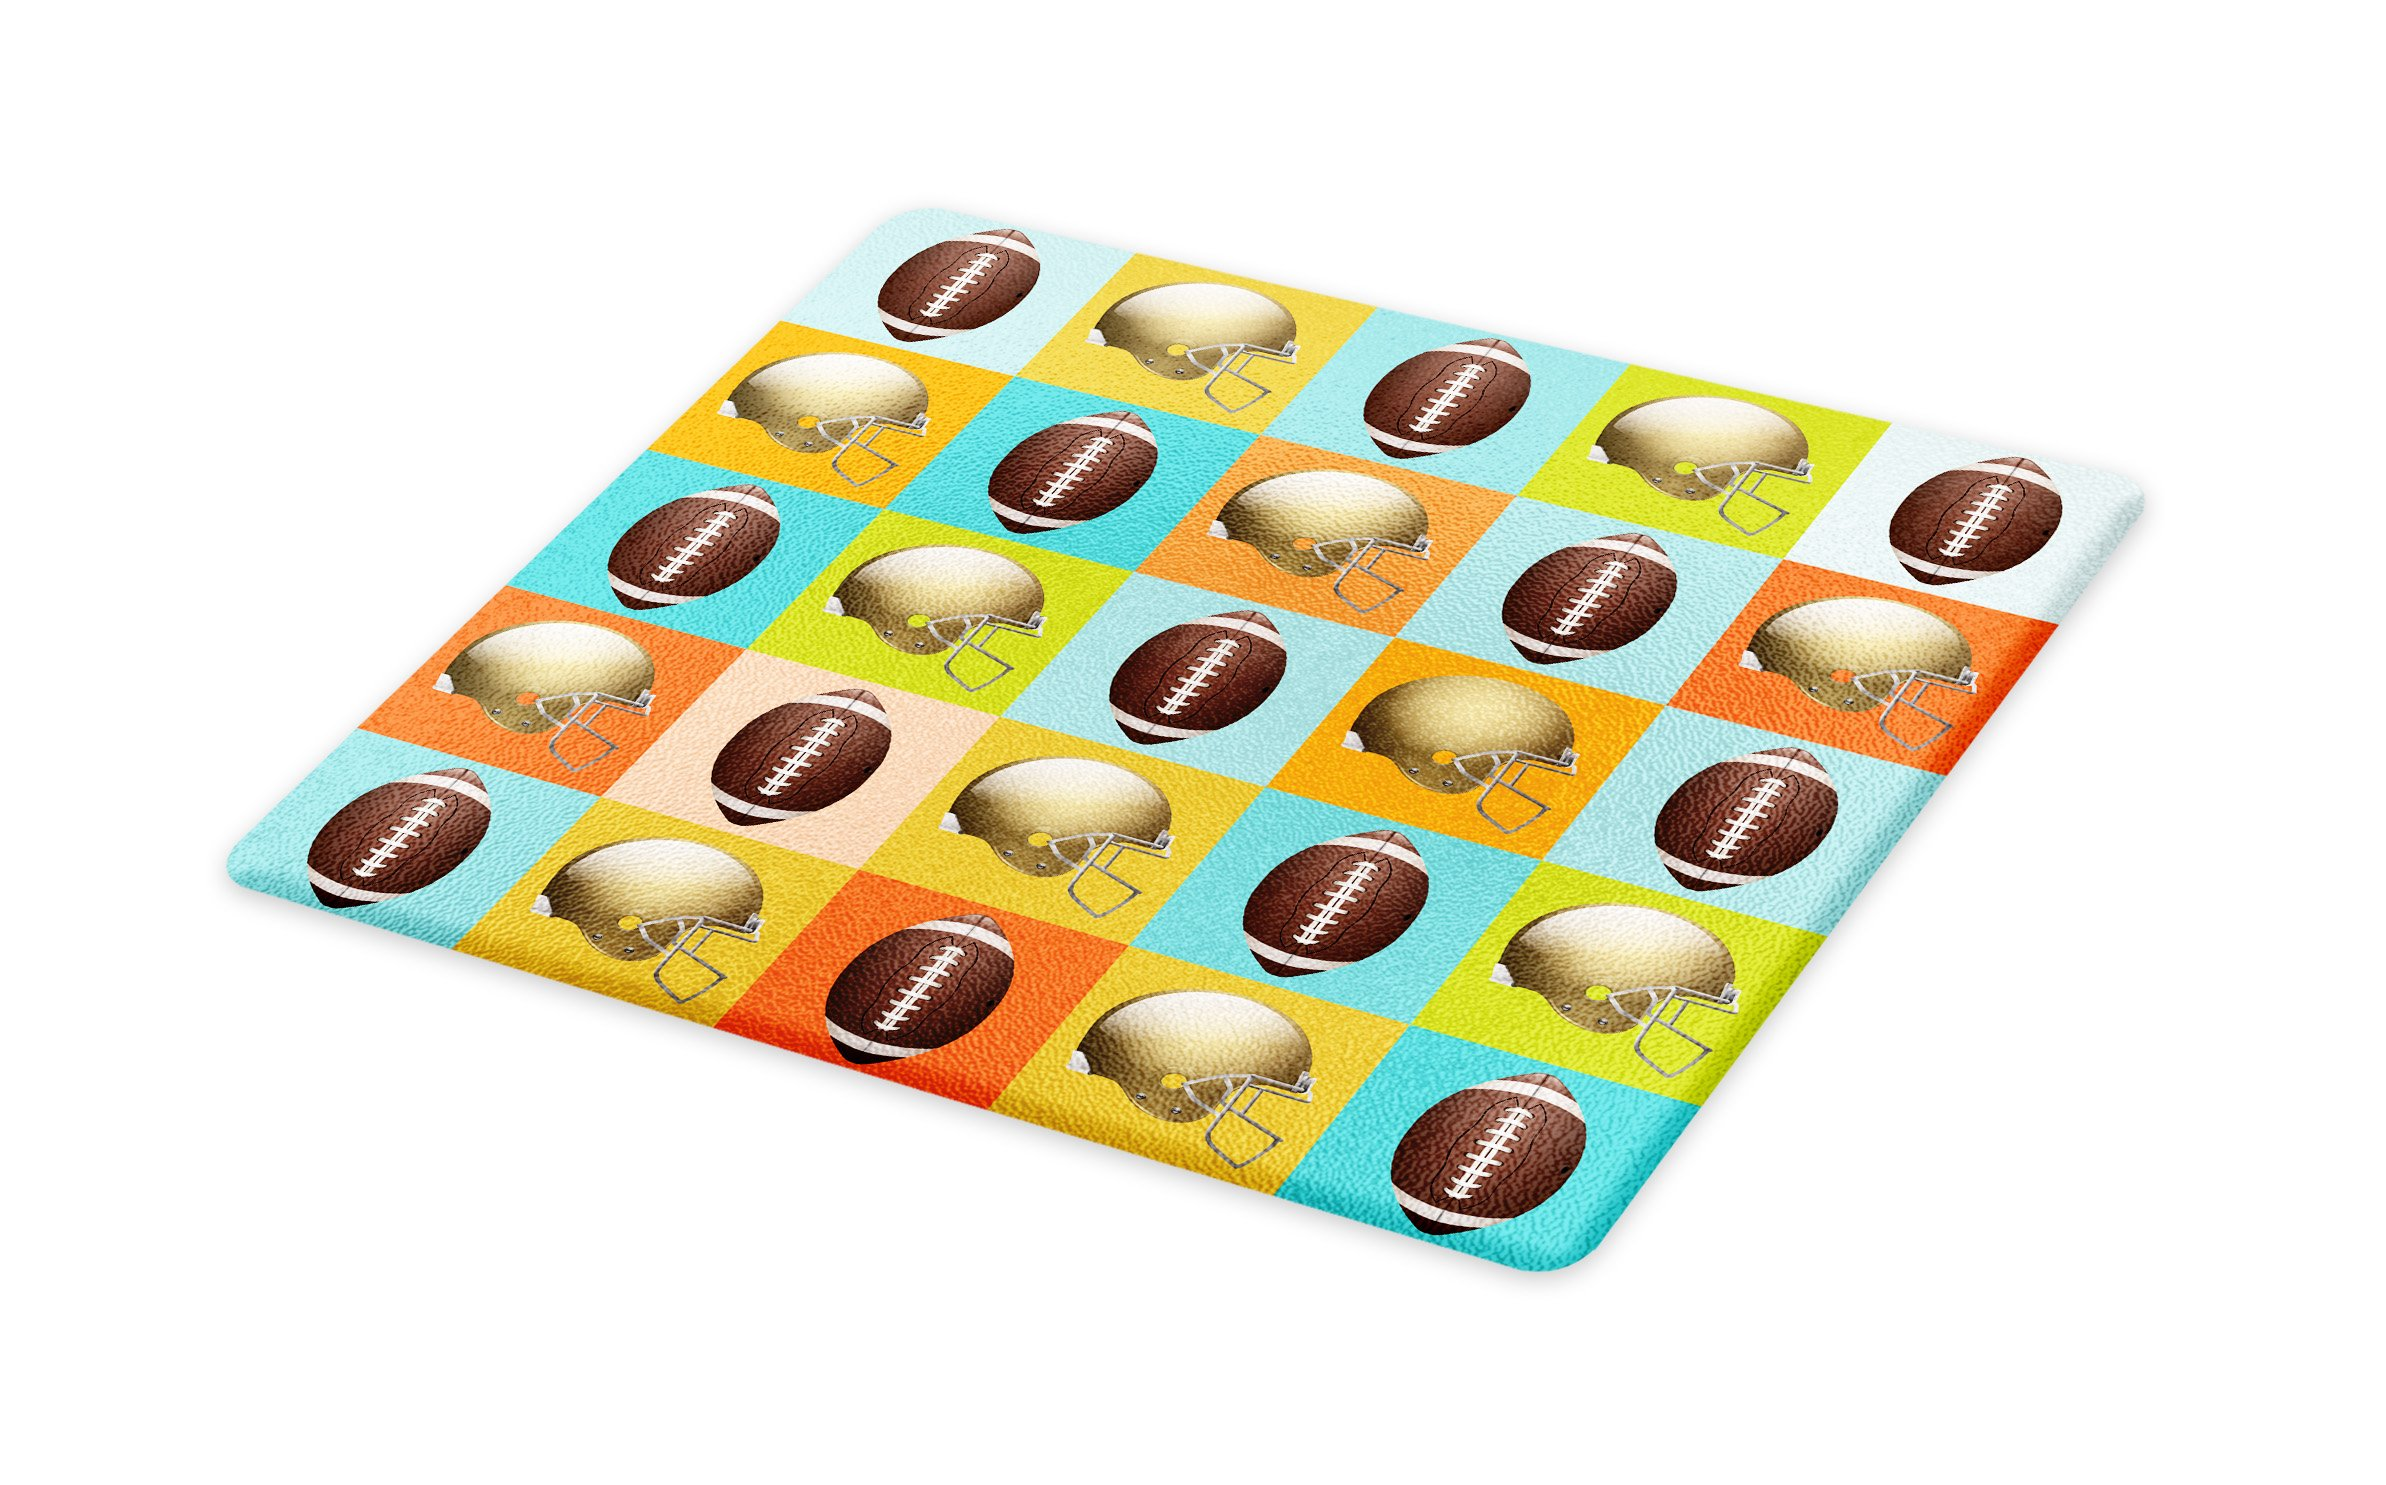 Lunarable Football Cutting Board, Colorful Squares Mosaic Pattern of Protective Equipment and Balls College Activity, Decorative Tempered Glass Cutting and Serving Board, Small Size, Multicolor